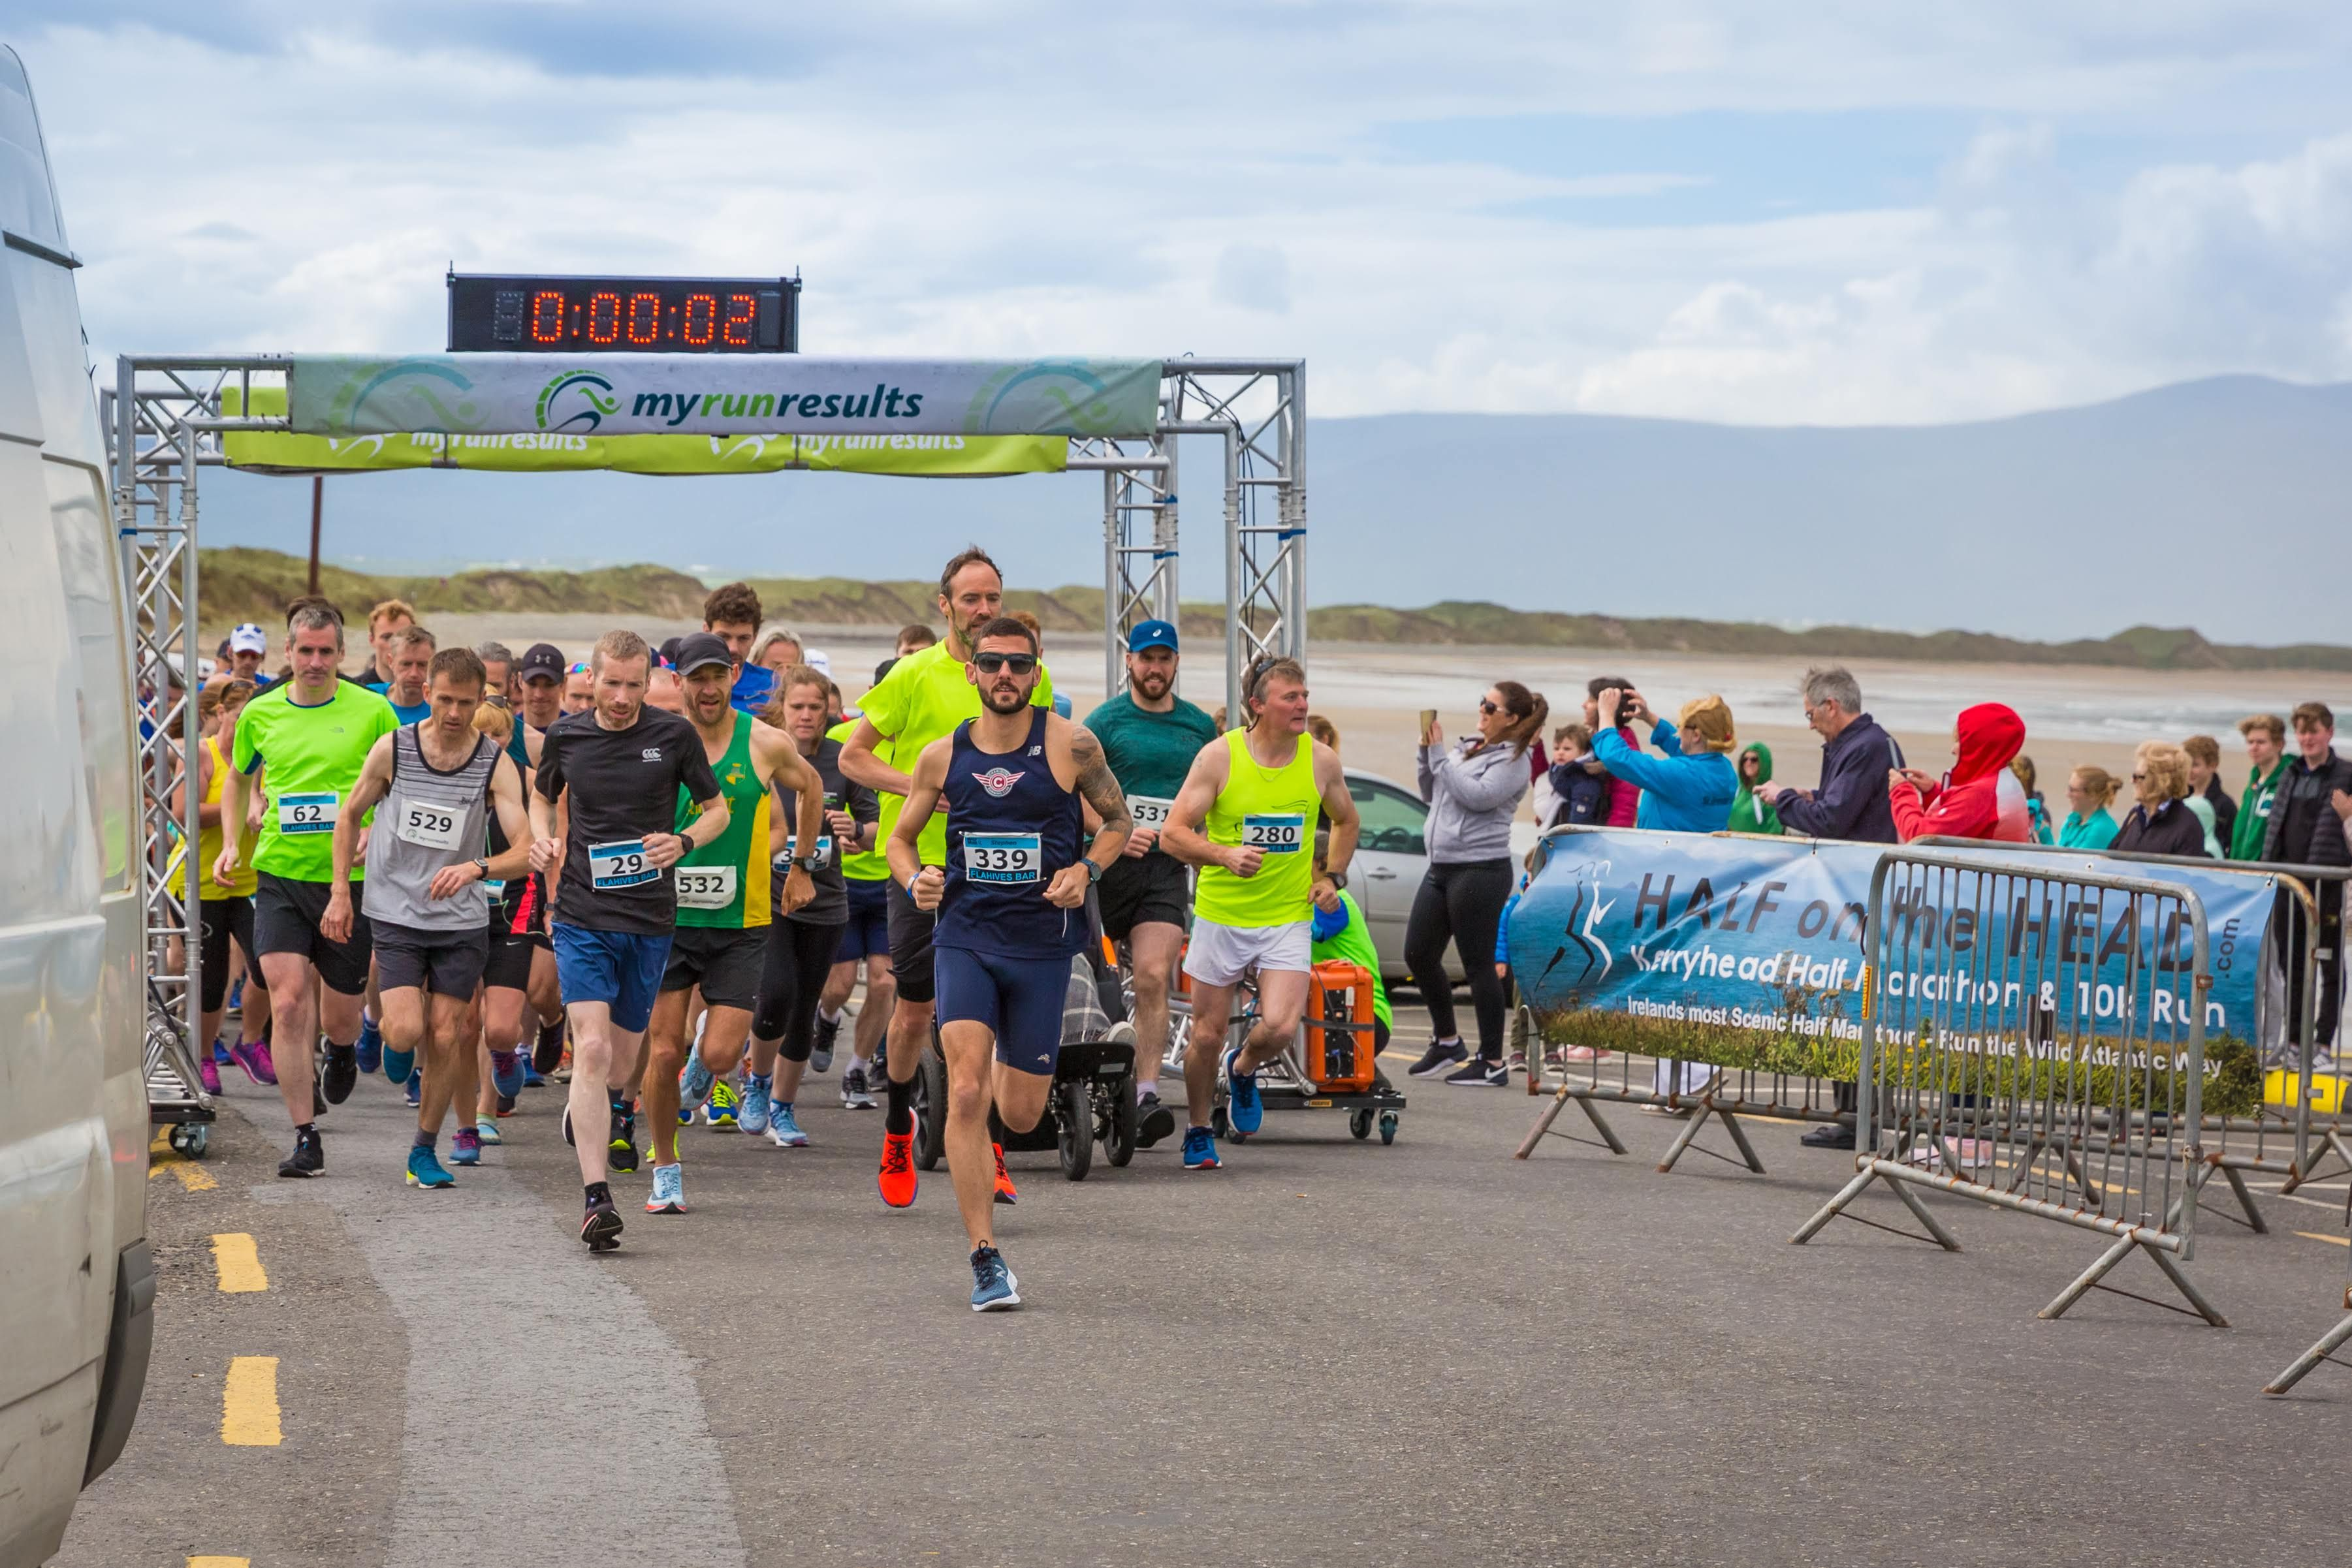 Race review - The Half On The Head